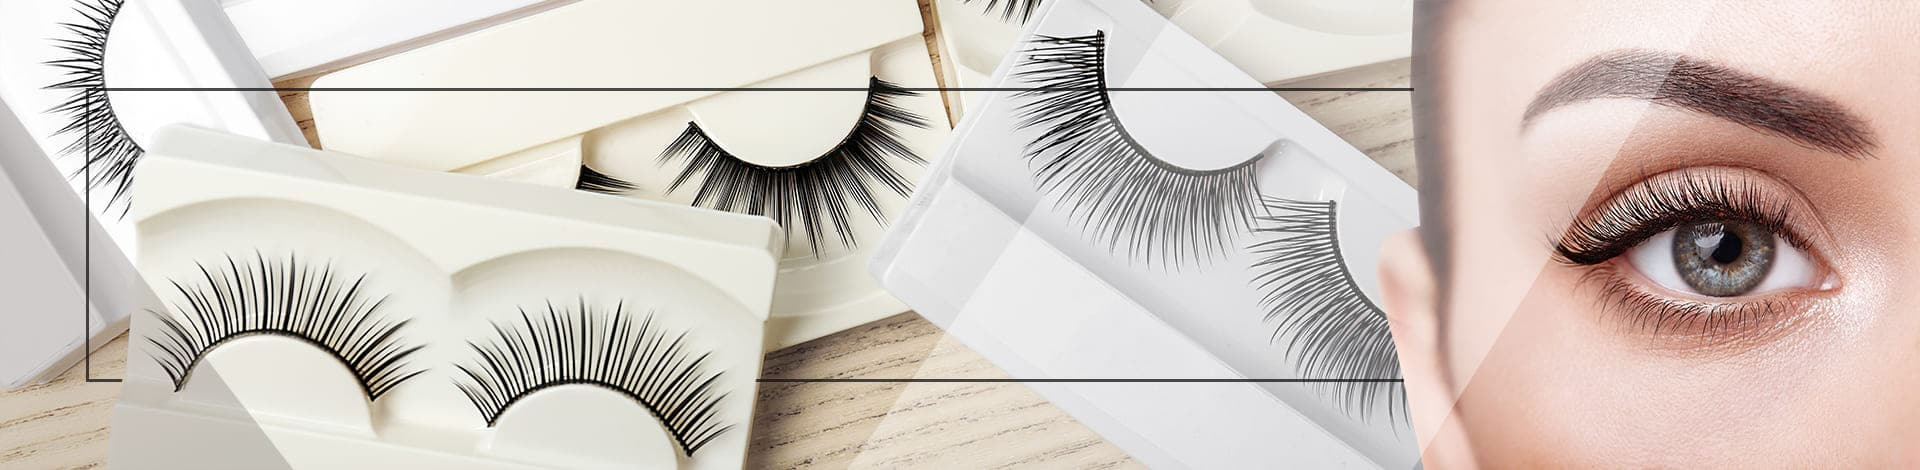 10 best fake eyelashes 2019 banner